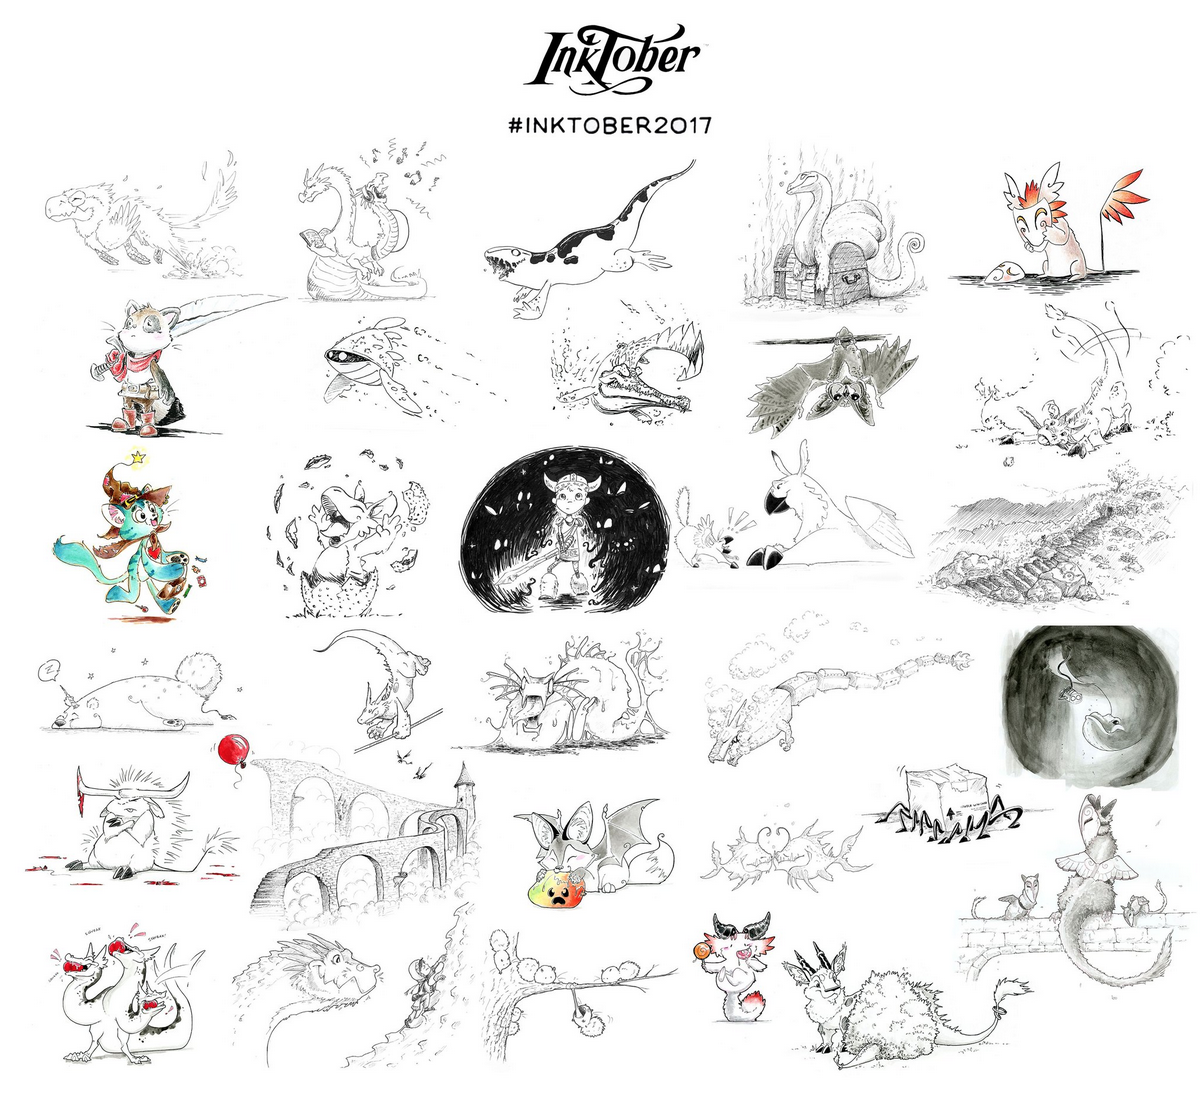 Carey Bowden - Check out all the fun creatures in Carey's first Inktober effort